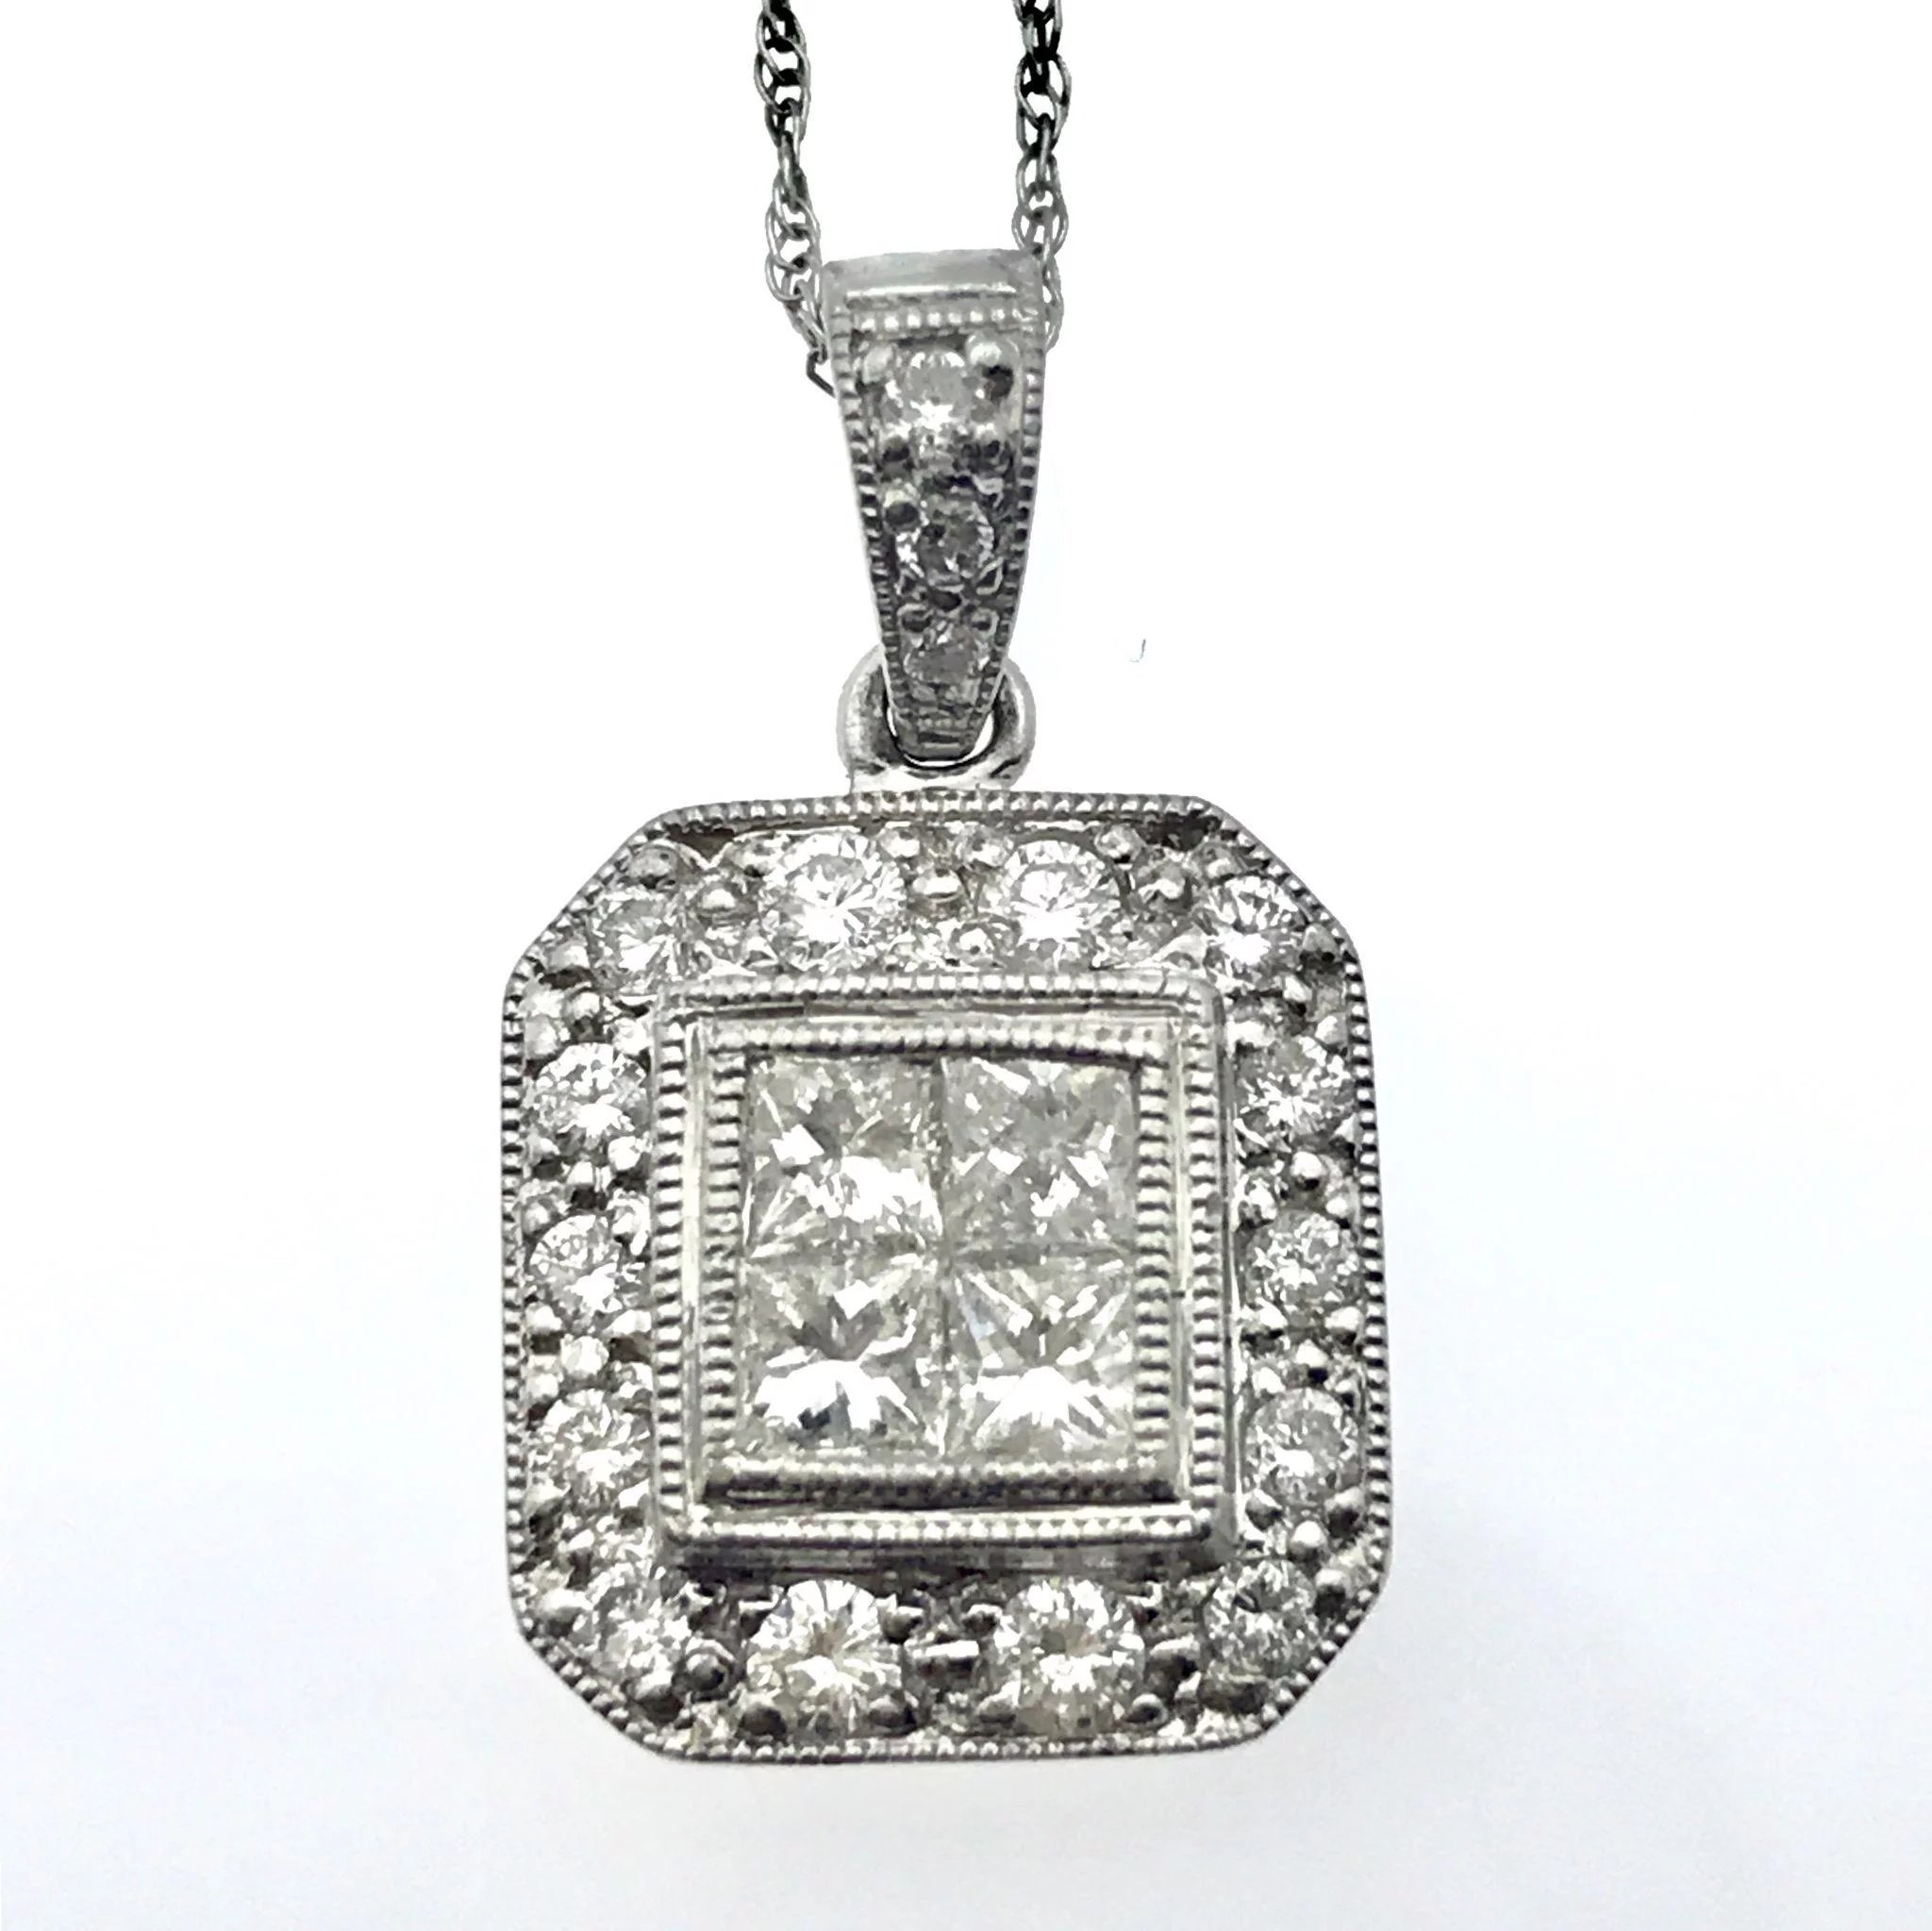 antique platinum product necklace cut diamond filigree art deco diamonds pendant in old european jewelers